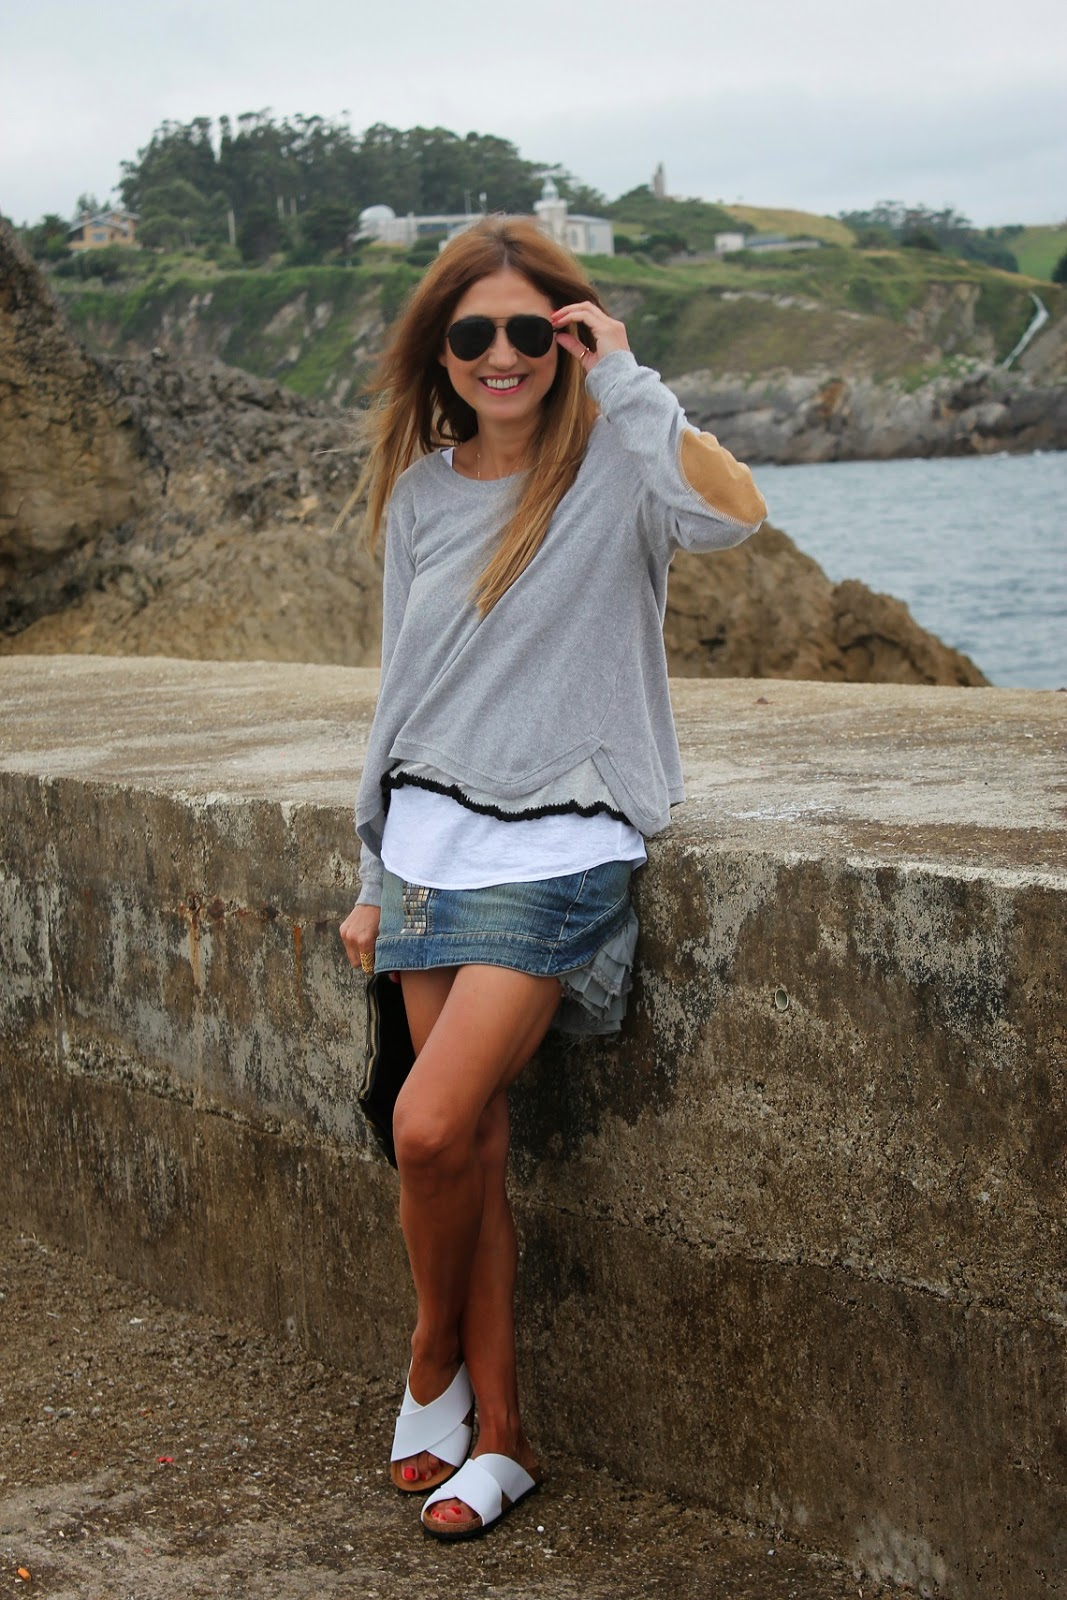 Outfit, blog de moda, Carmen Hummer, Street Style, La Barquera, Cantabria, summer, holidays, beach, travel, fashion style, blogger